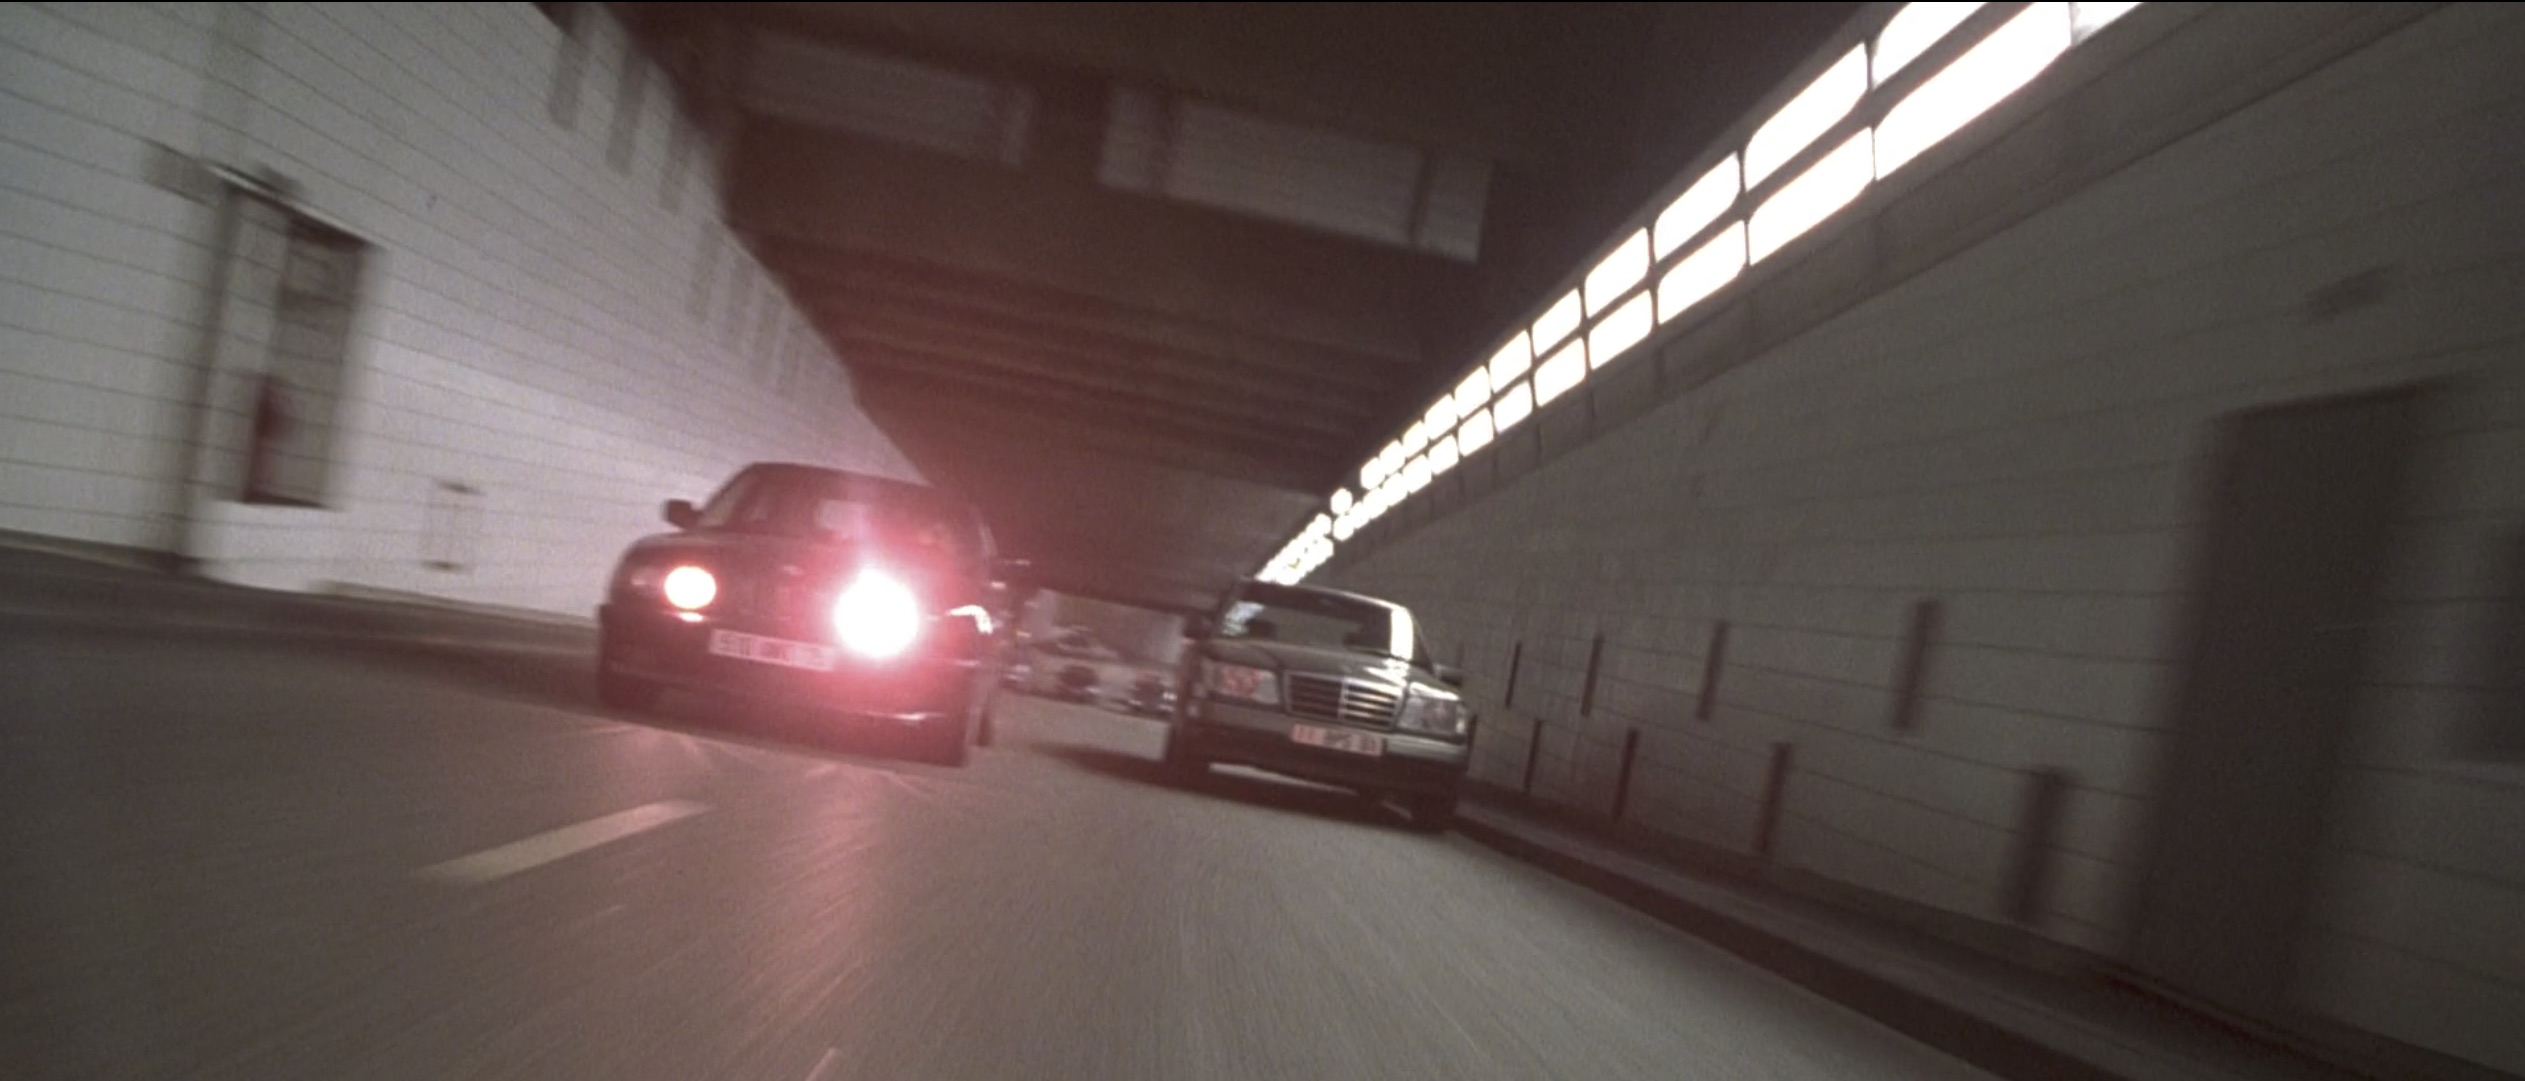 Ronin tunnel chase